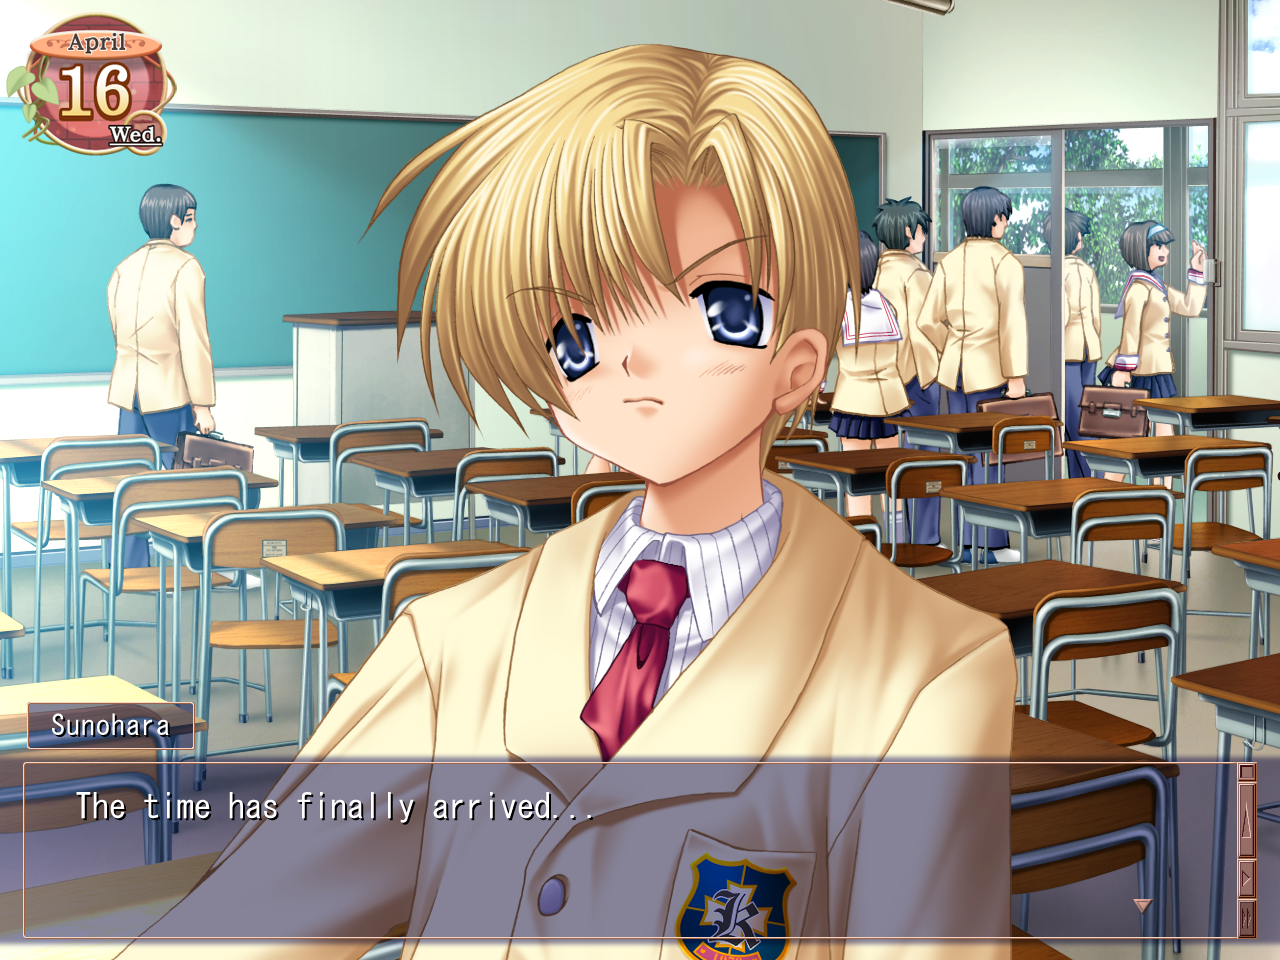 CLANNAD has been released on Steam, and so begins our CLANNAD Bookclub!